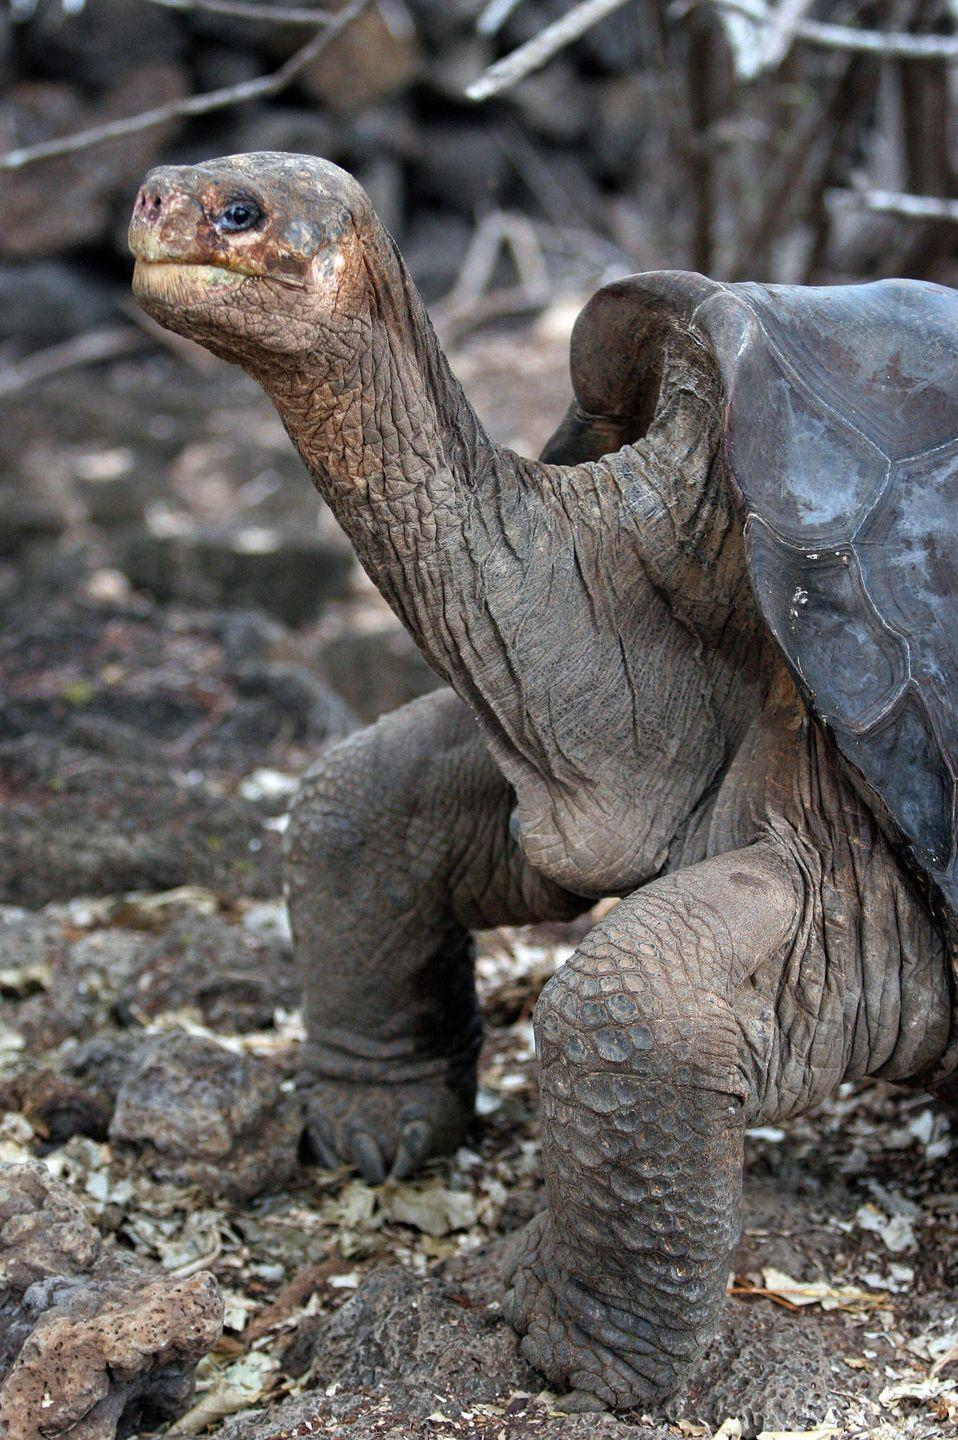 <p>The Pinta Island tortoise was around when Darwin visited the Galapagos in 1835. Sadly, a male named Lonesome George (pictured), was the last purebred of this subspecies and passed in 2015.</p><p><strong>Cause of Extinction:</strong> goats that humans introduced to Pinta Island who destroyed their habitats, rats (also introduced by humans) who preyed on young tortoises, and humans killing the tortoises for their meat.</p>